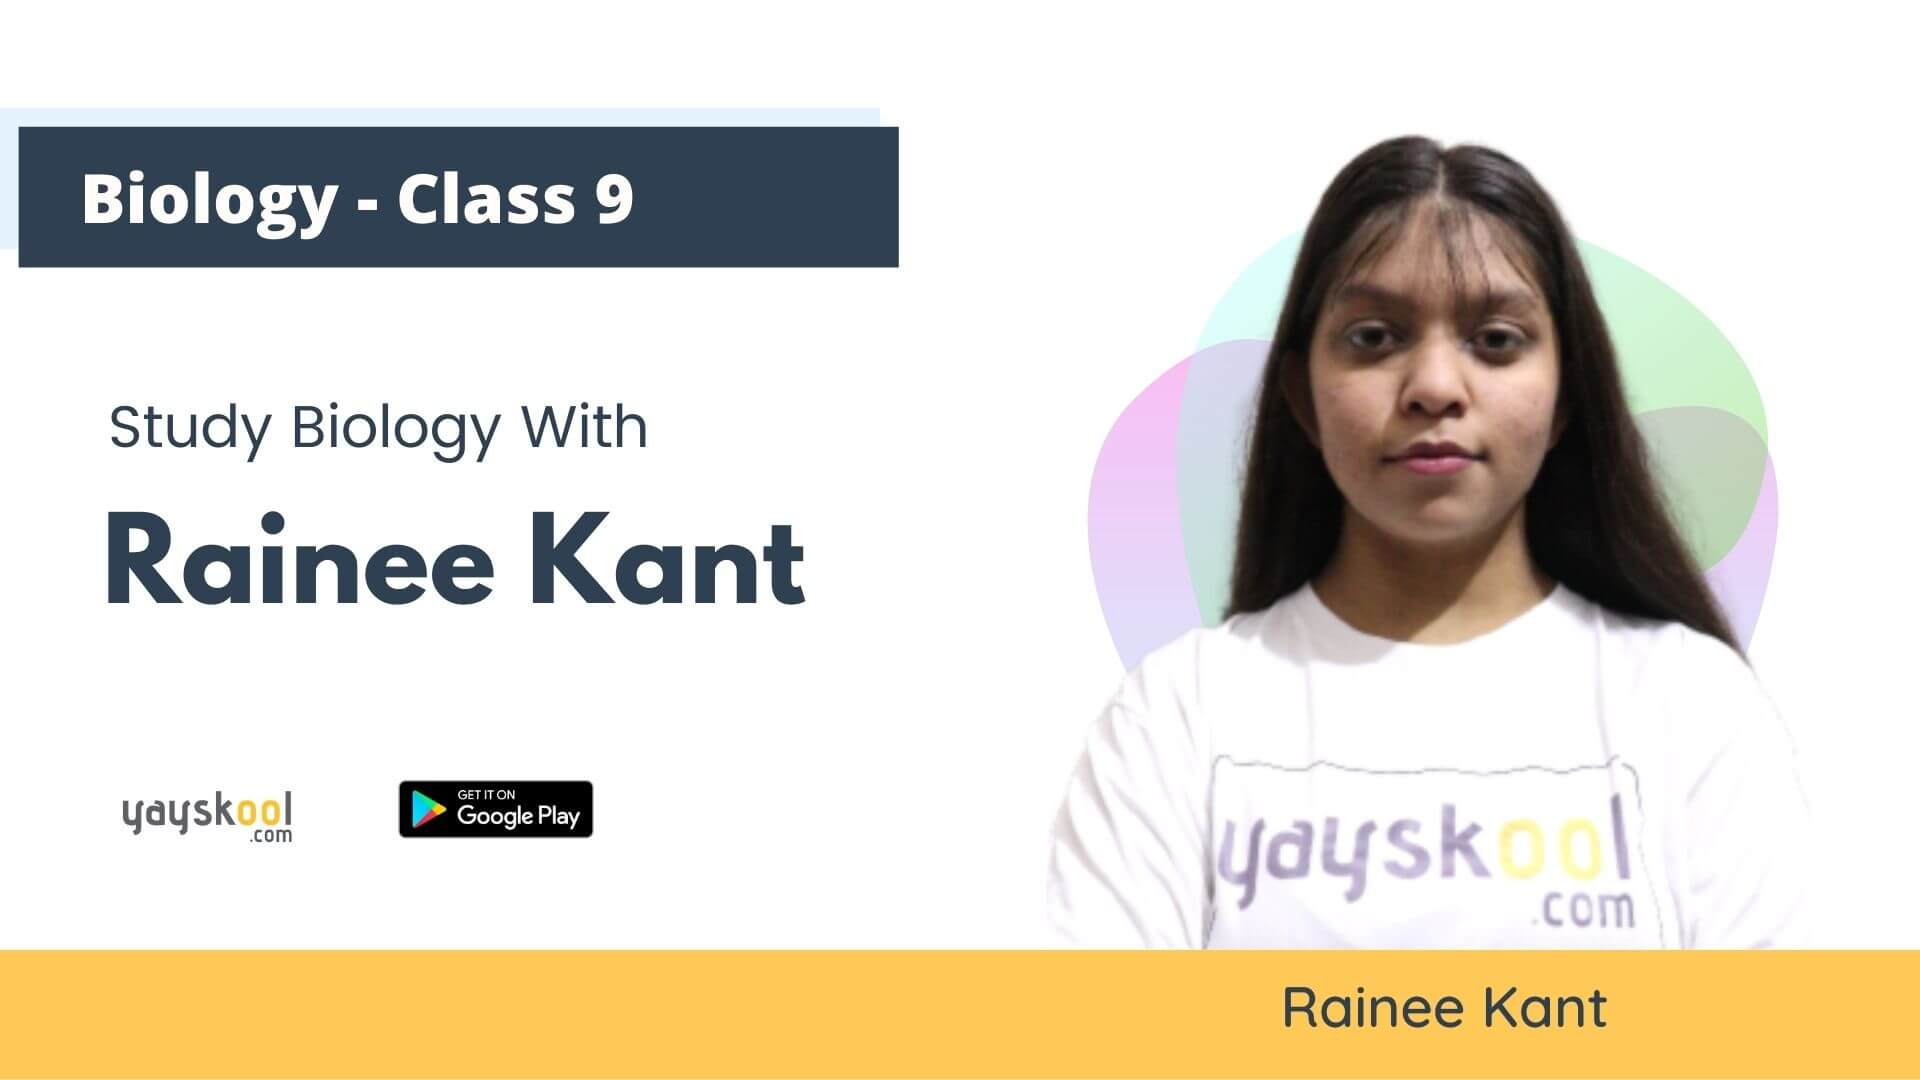 Complete Course - Learn Biology With Rainee Kant - Class 09 - CBSE